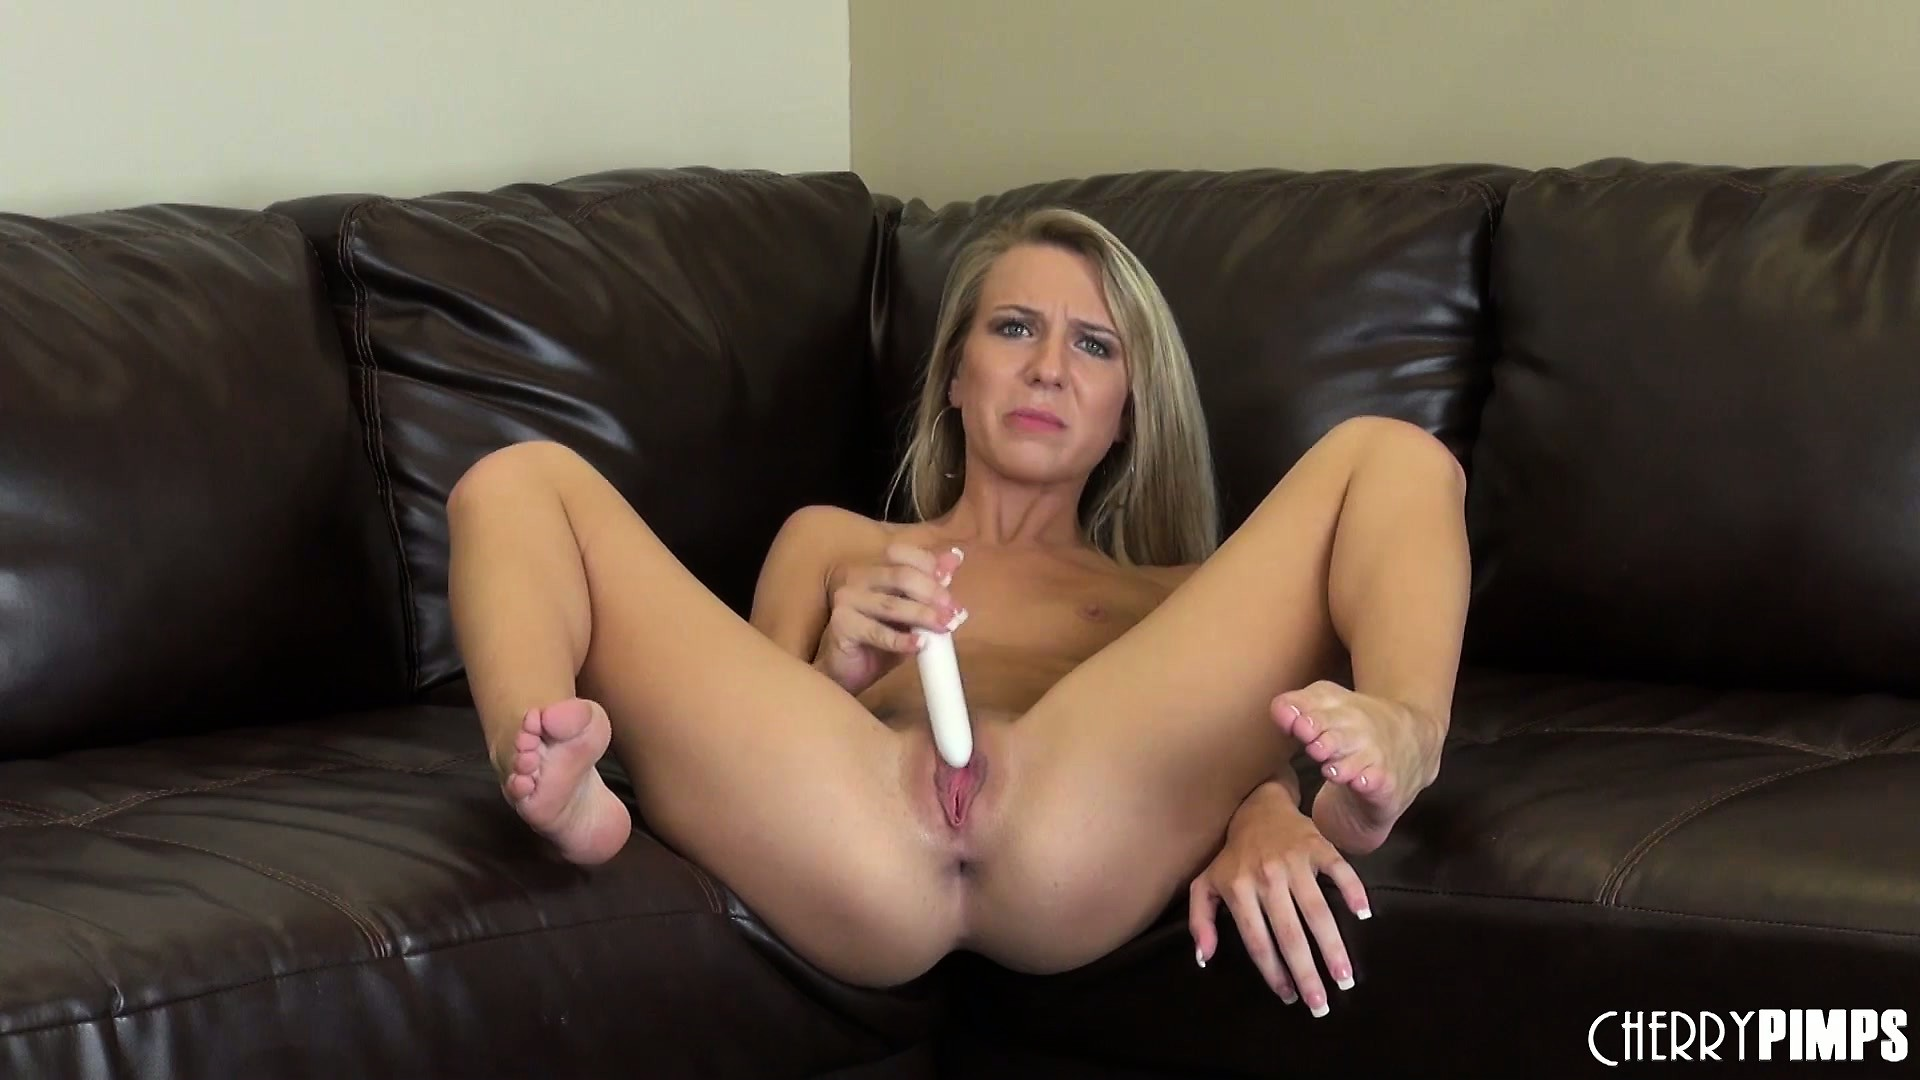 Porno Video of She Sticks Her Ass Out As She Fingers Then Sits And Toys Her Cunt